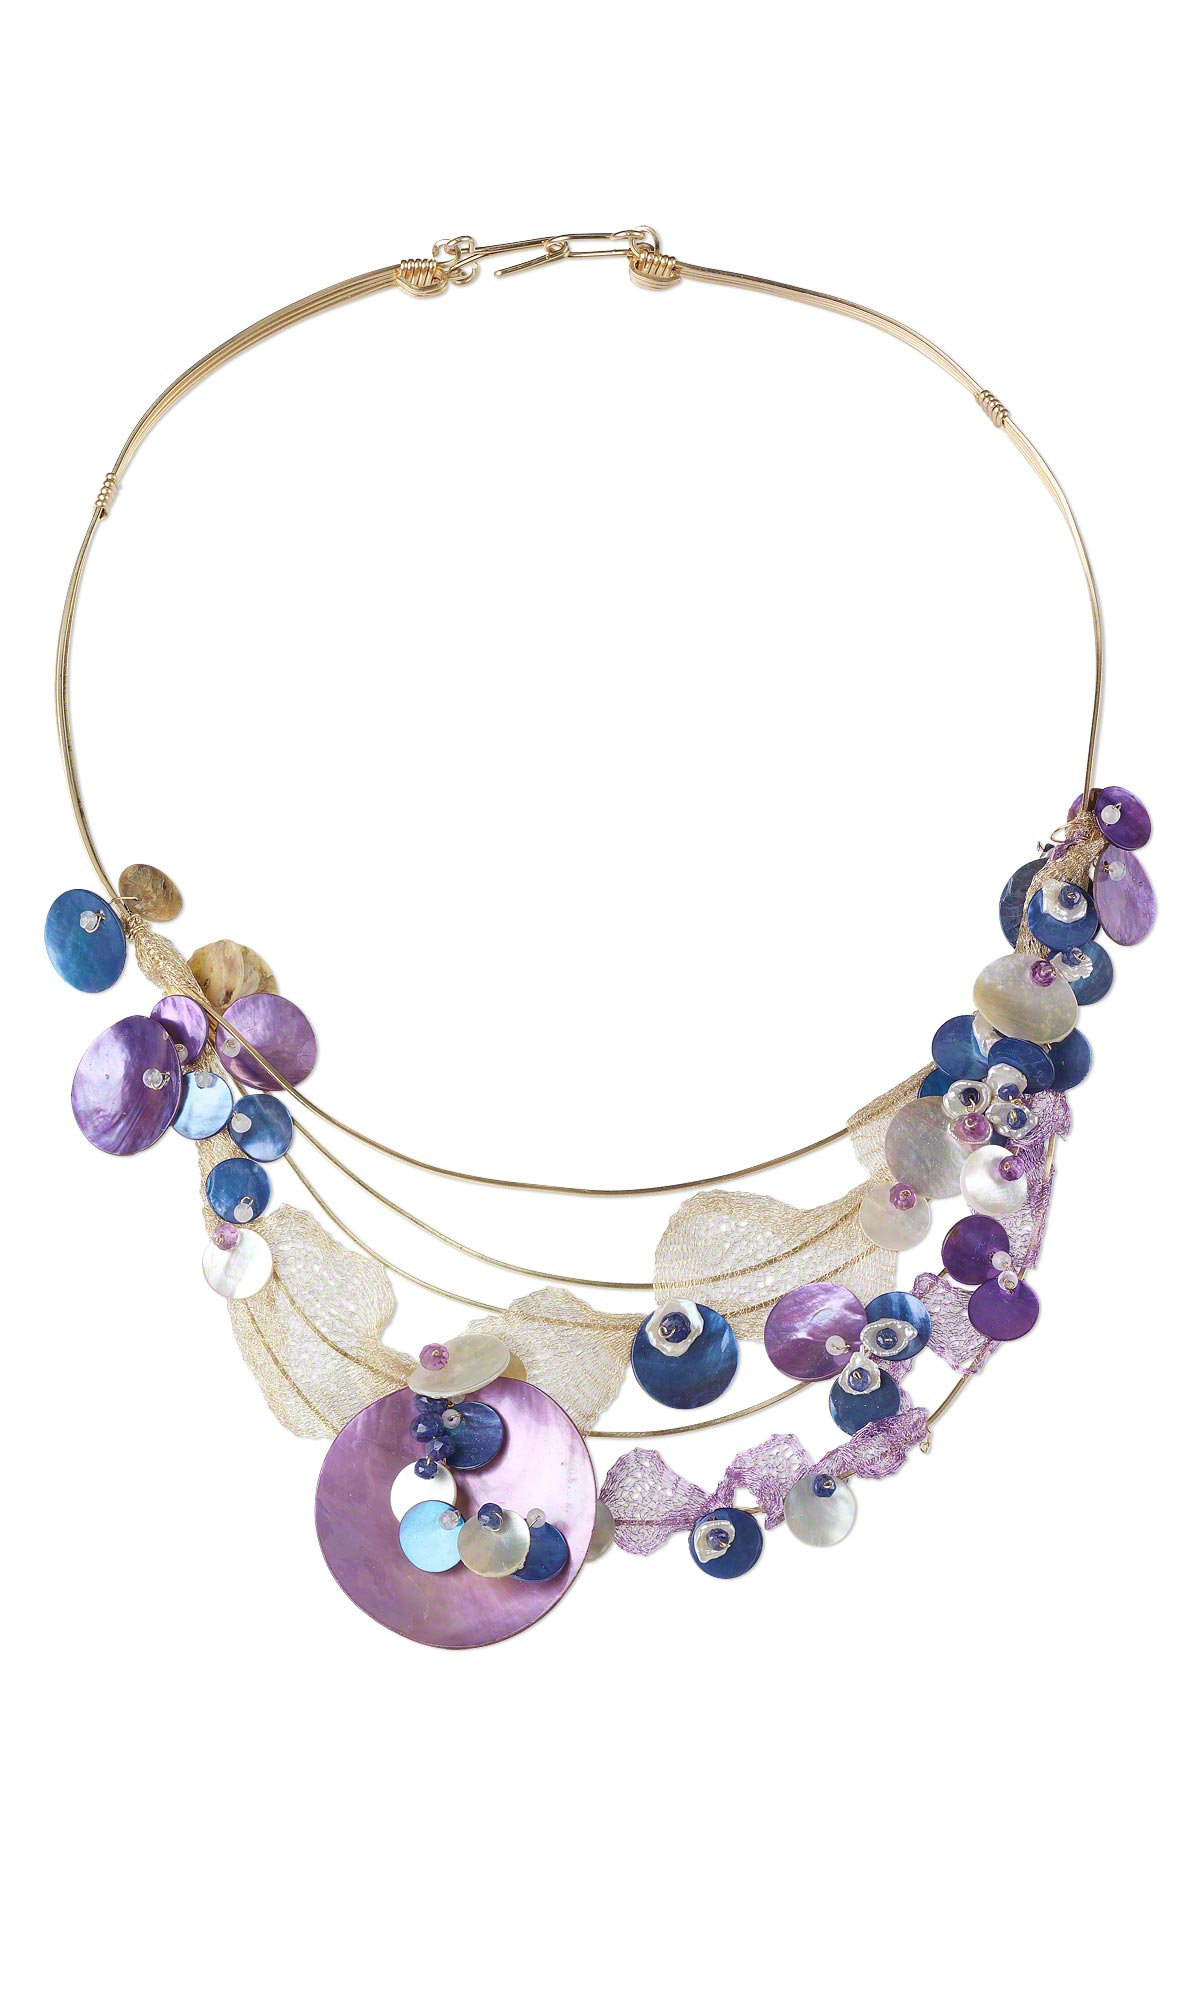 single strand necklace with mussel shell drops rainbow moonstone gemstone beads and amethyst gemstone beads - Necklace Design Ideas